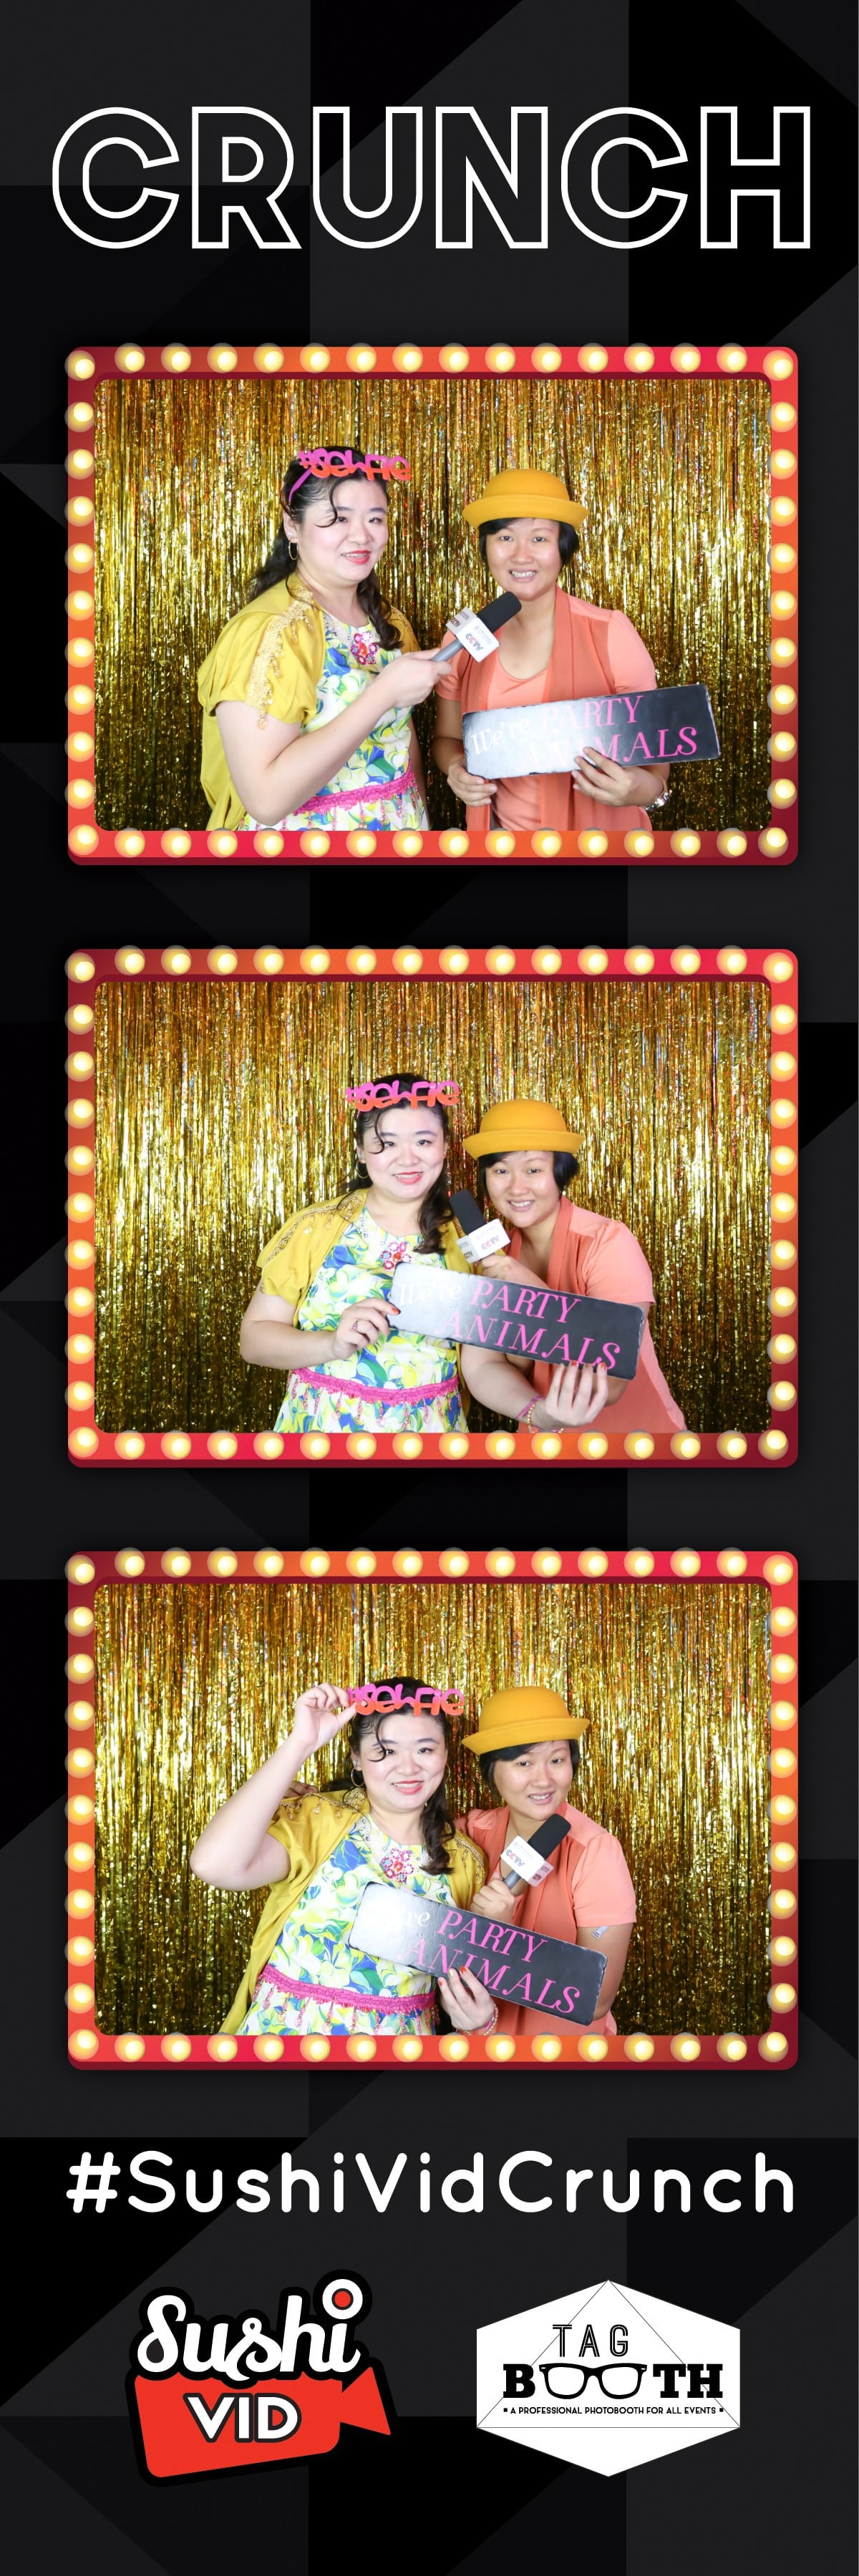 Sushivid+crunch+tagbooth1+25